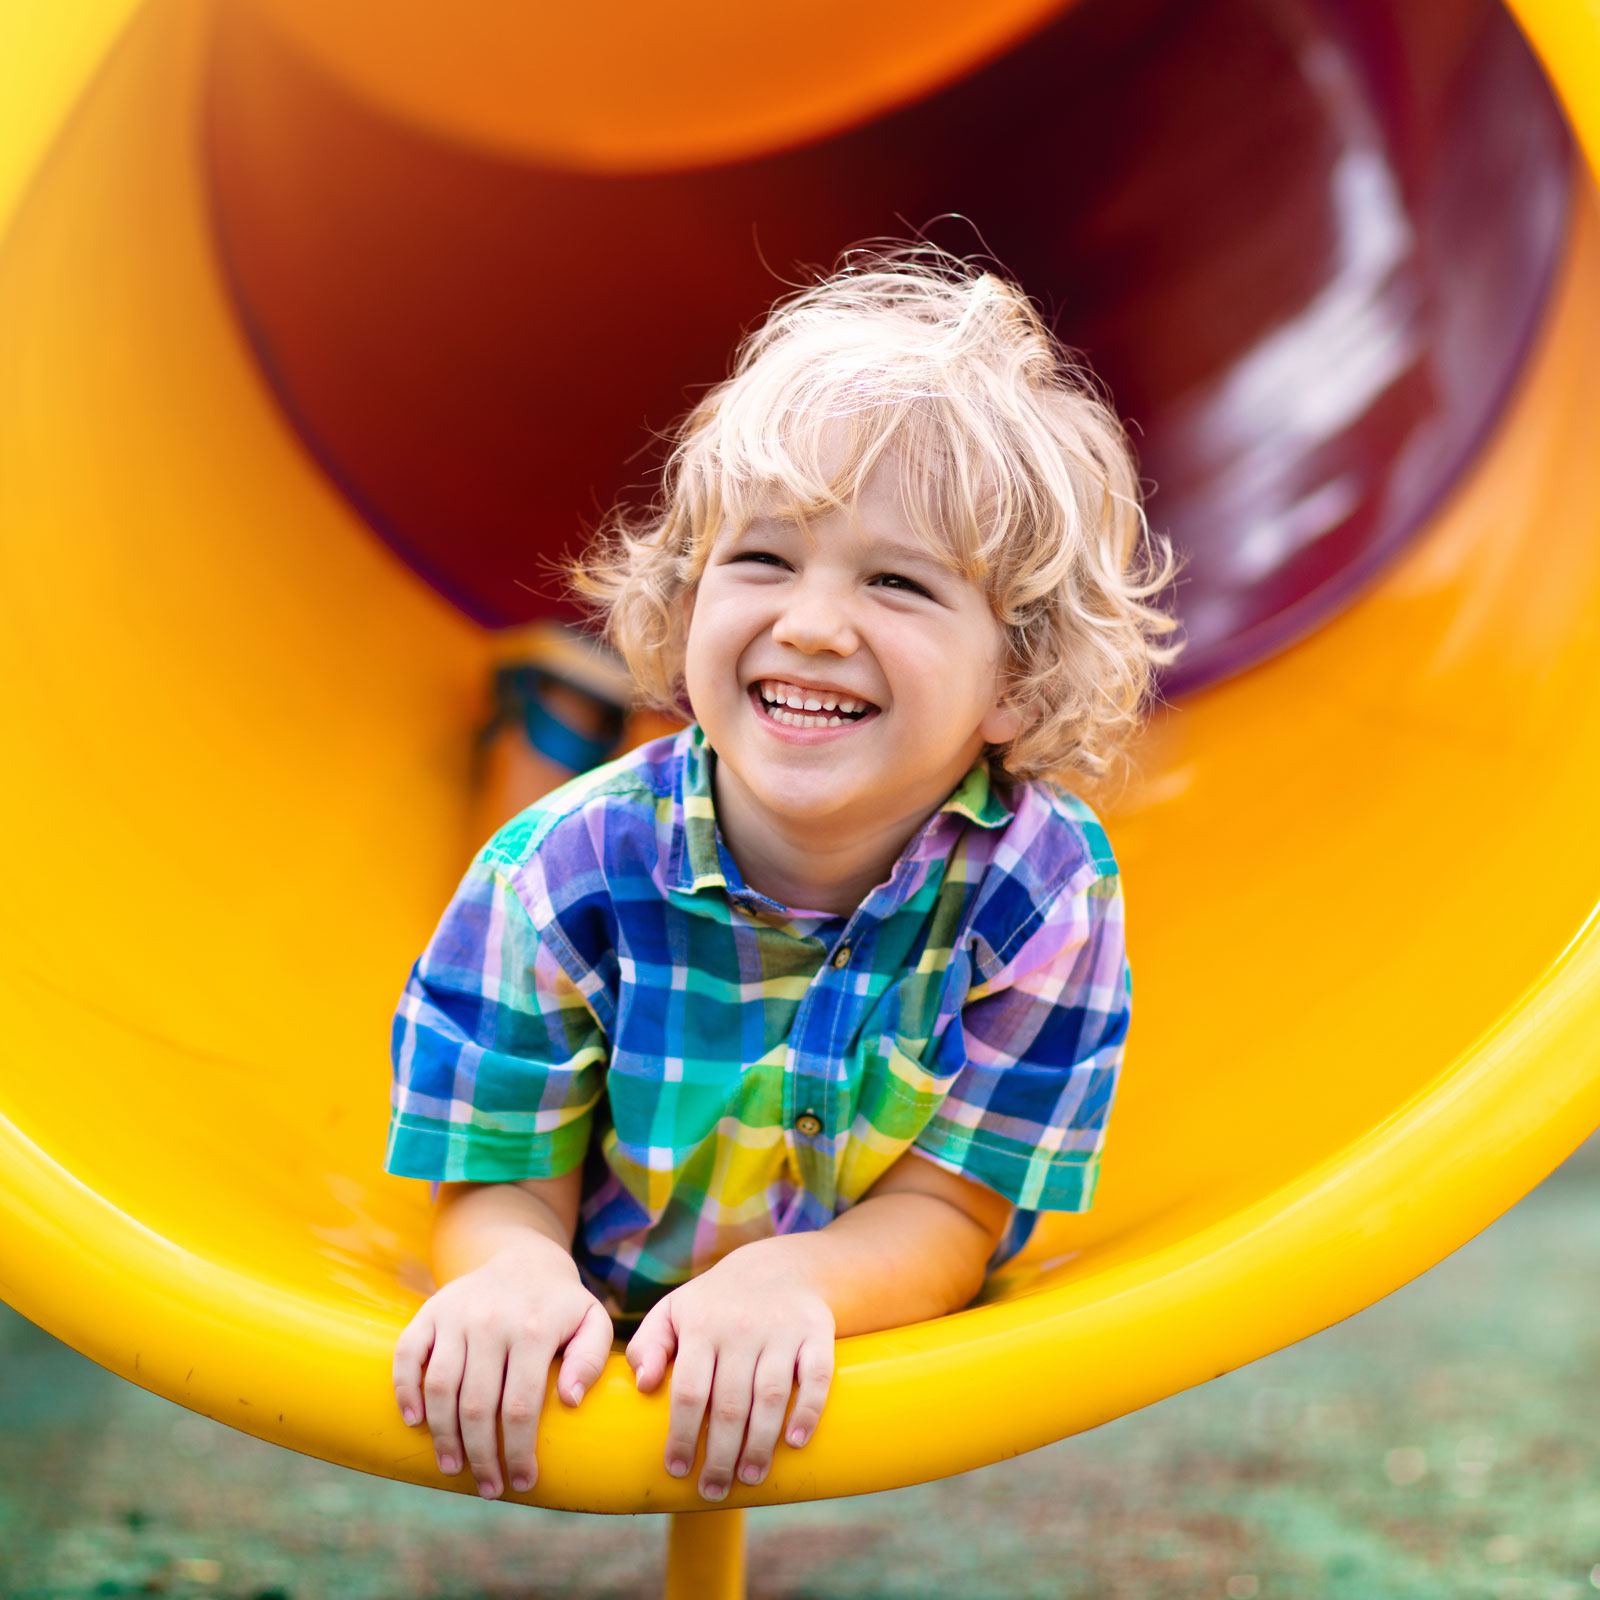 a smiling boy goes down a slide on his belly